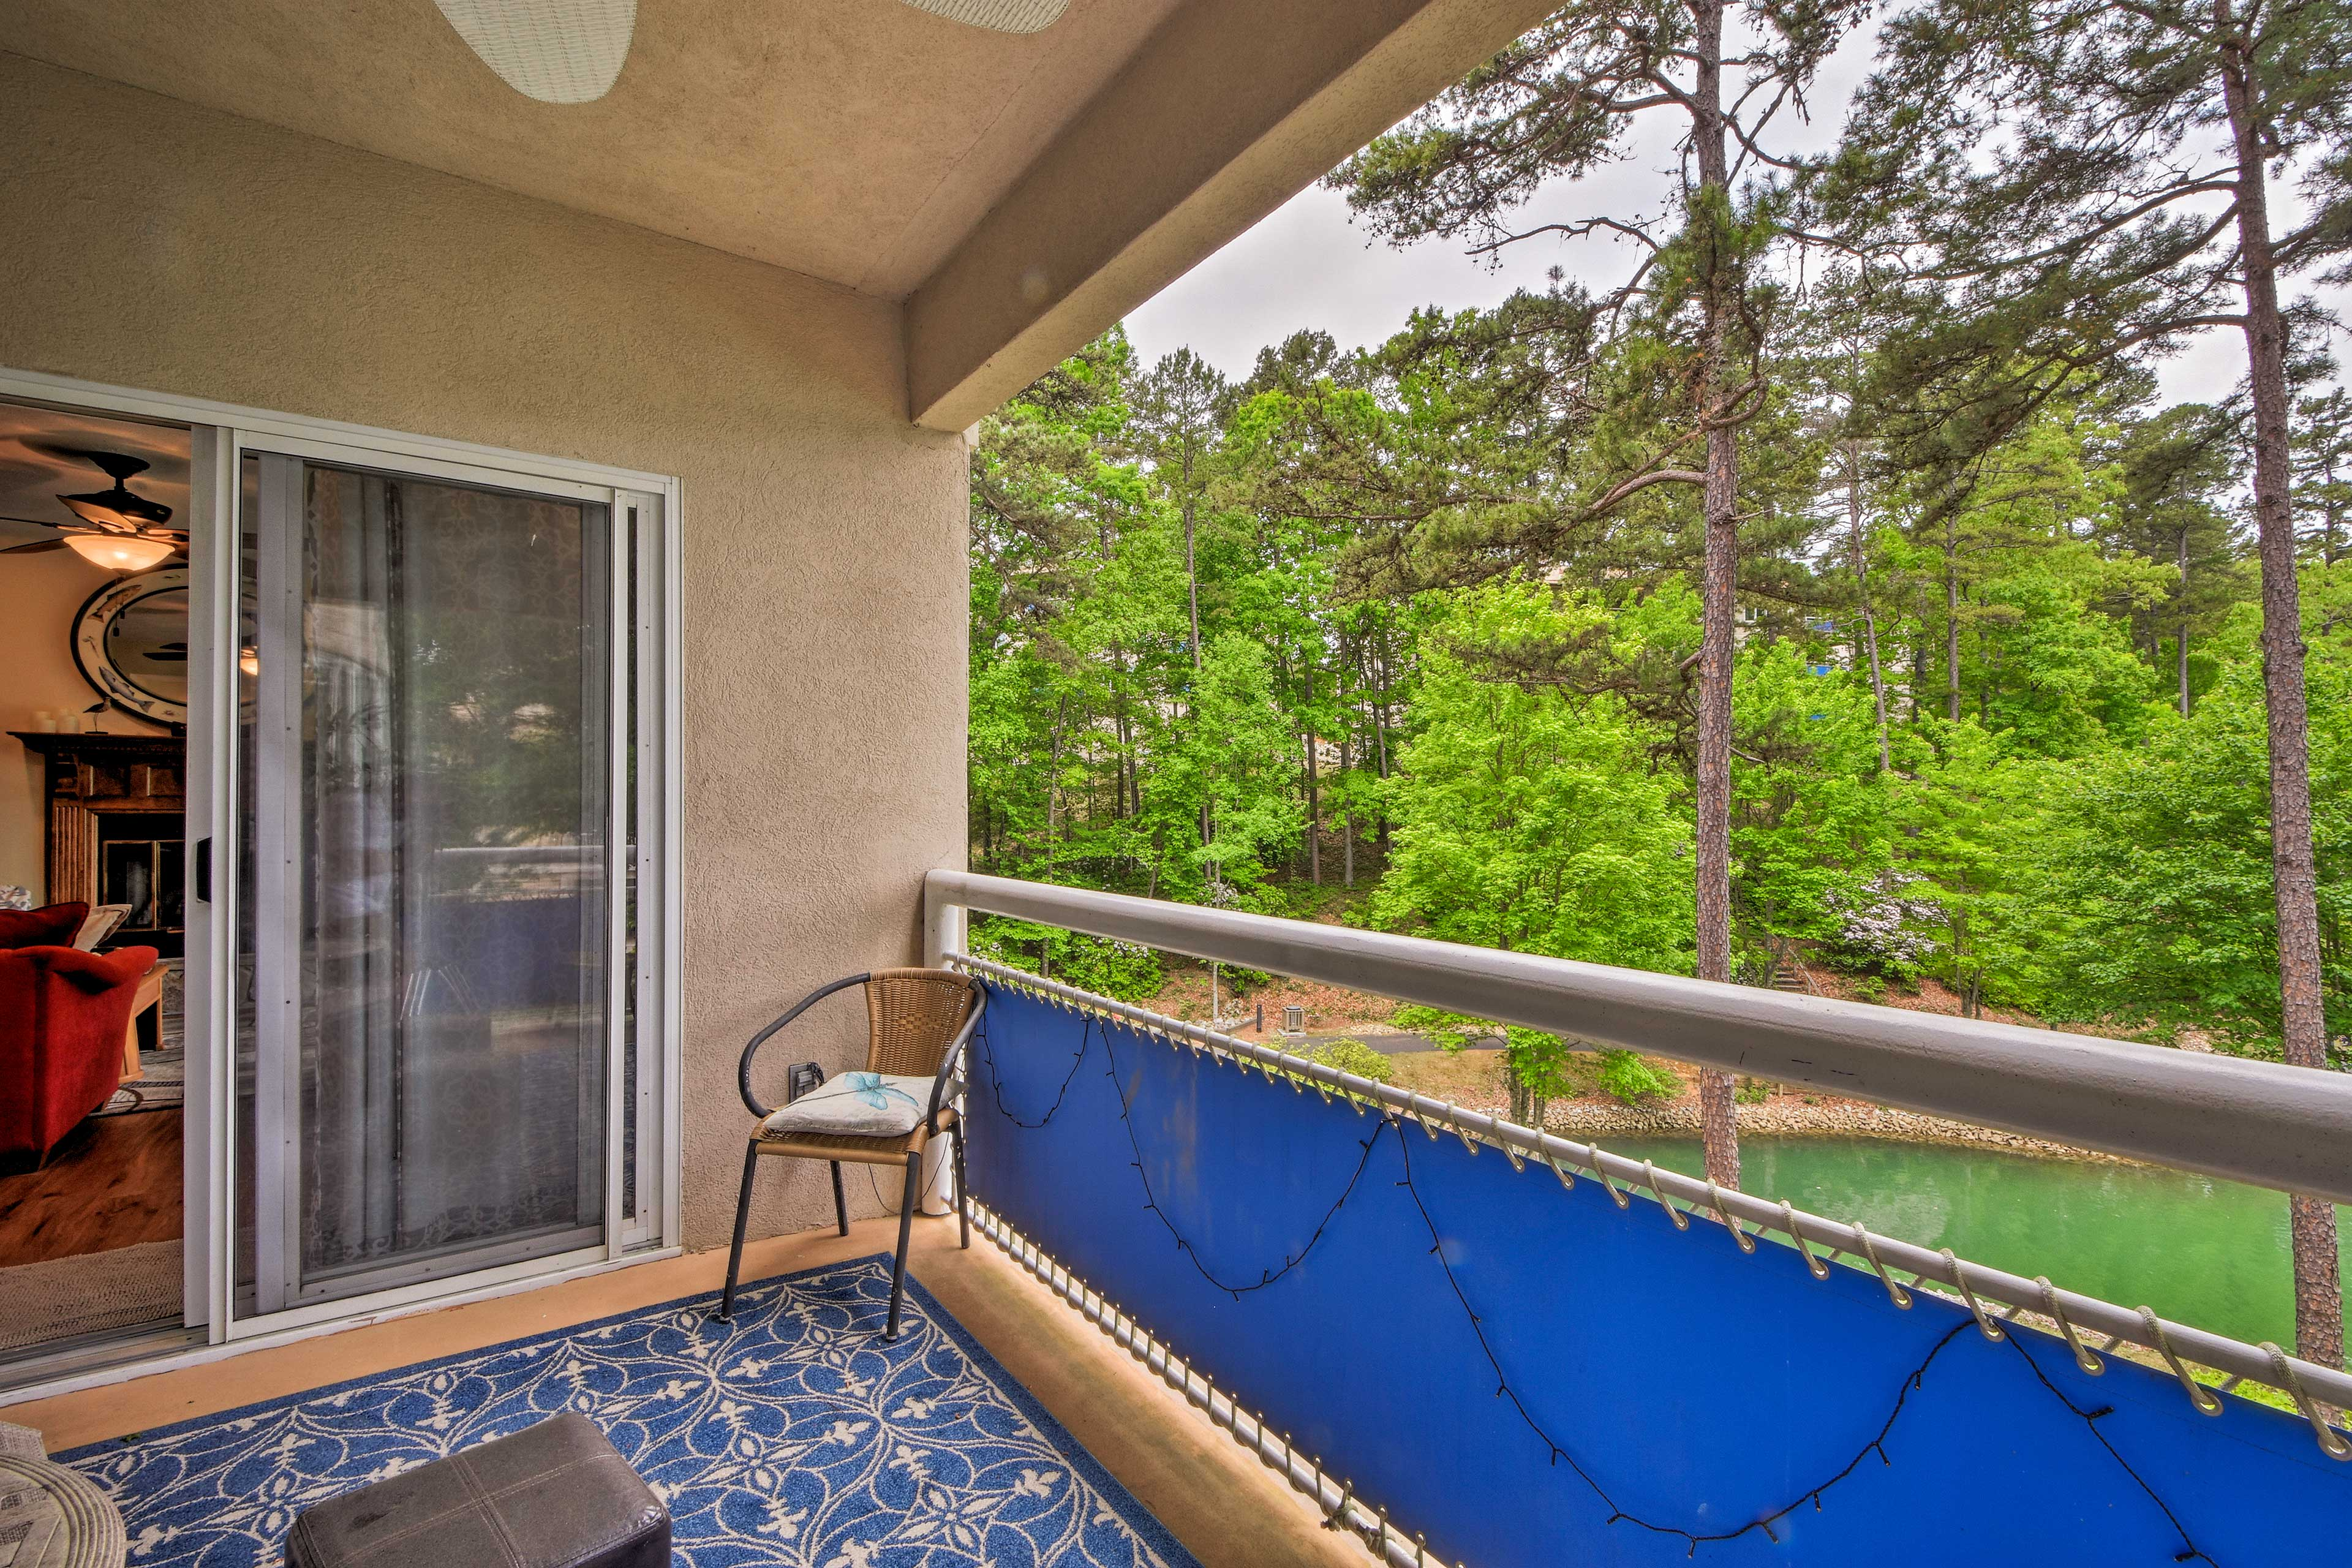 Relax outside on the balcony with views of the water.